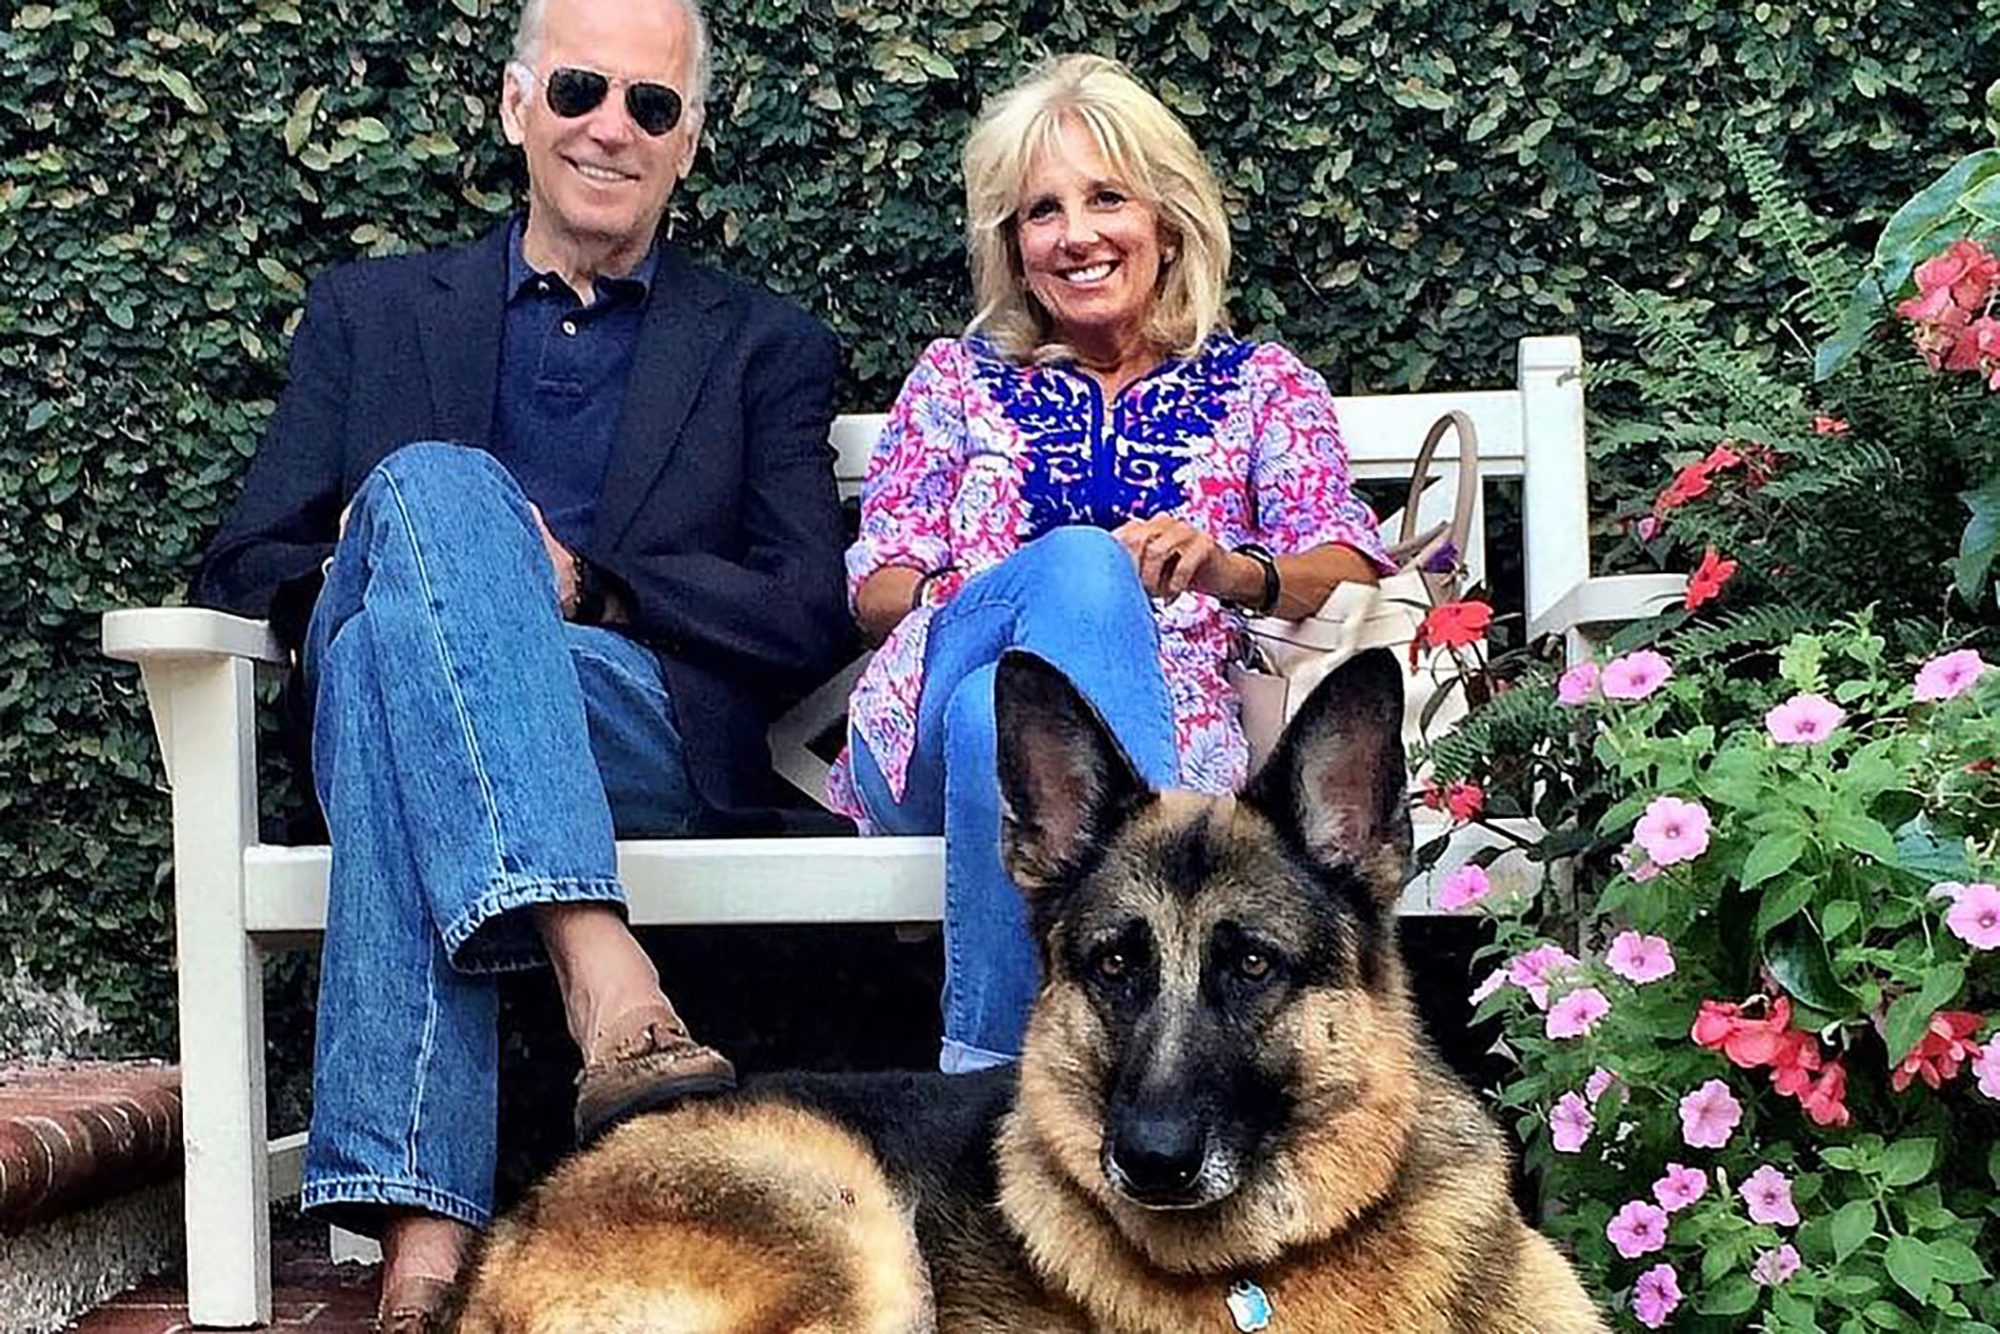 Joe and Jill Biden with Champ